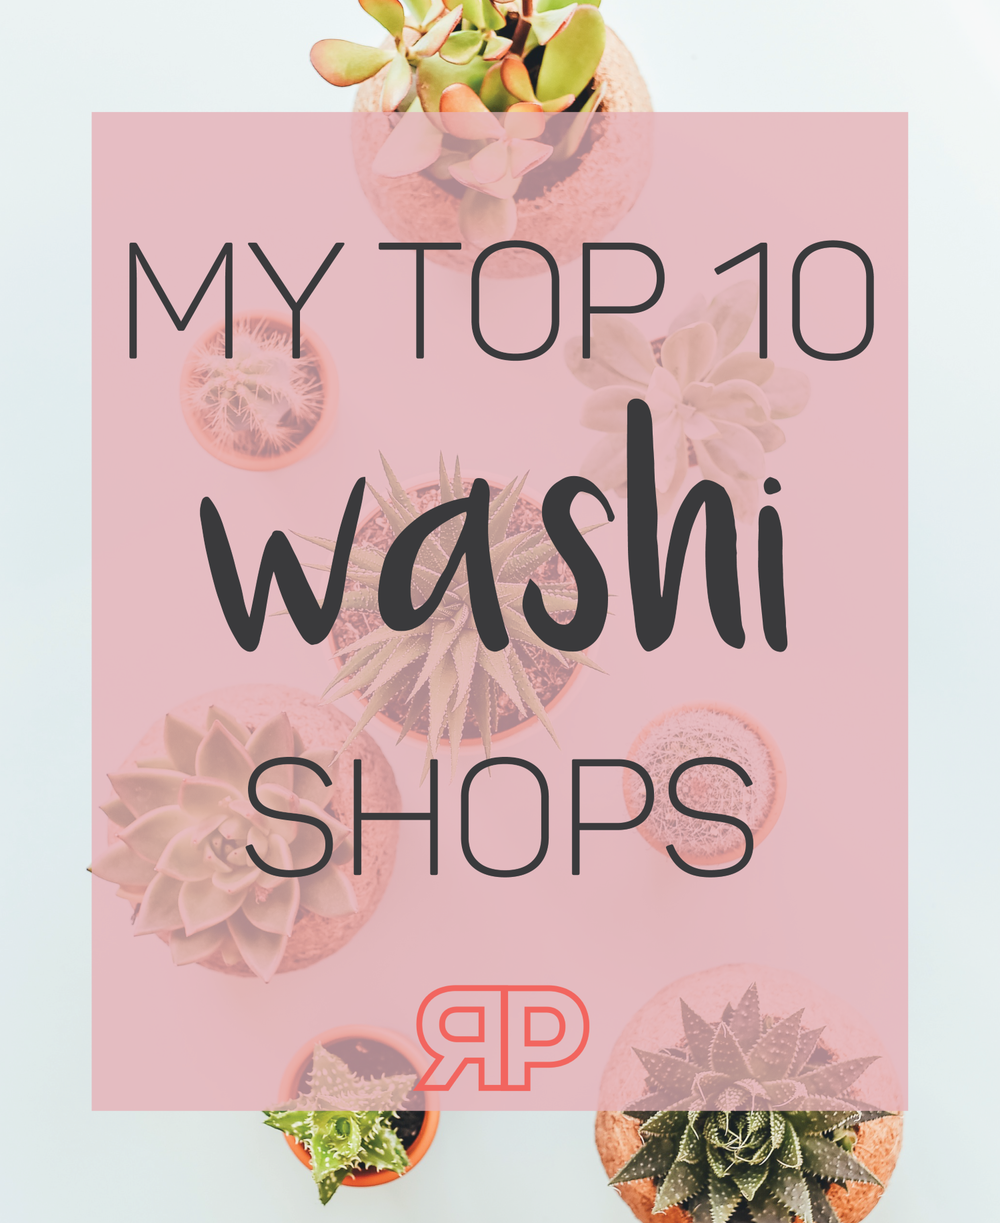 My Top 10 Washi Shops | Rourke Planners